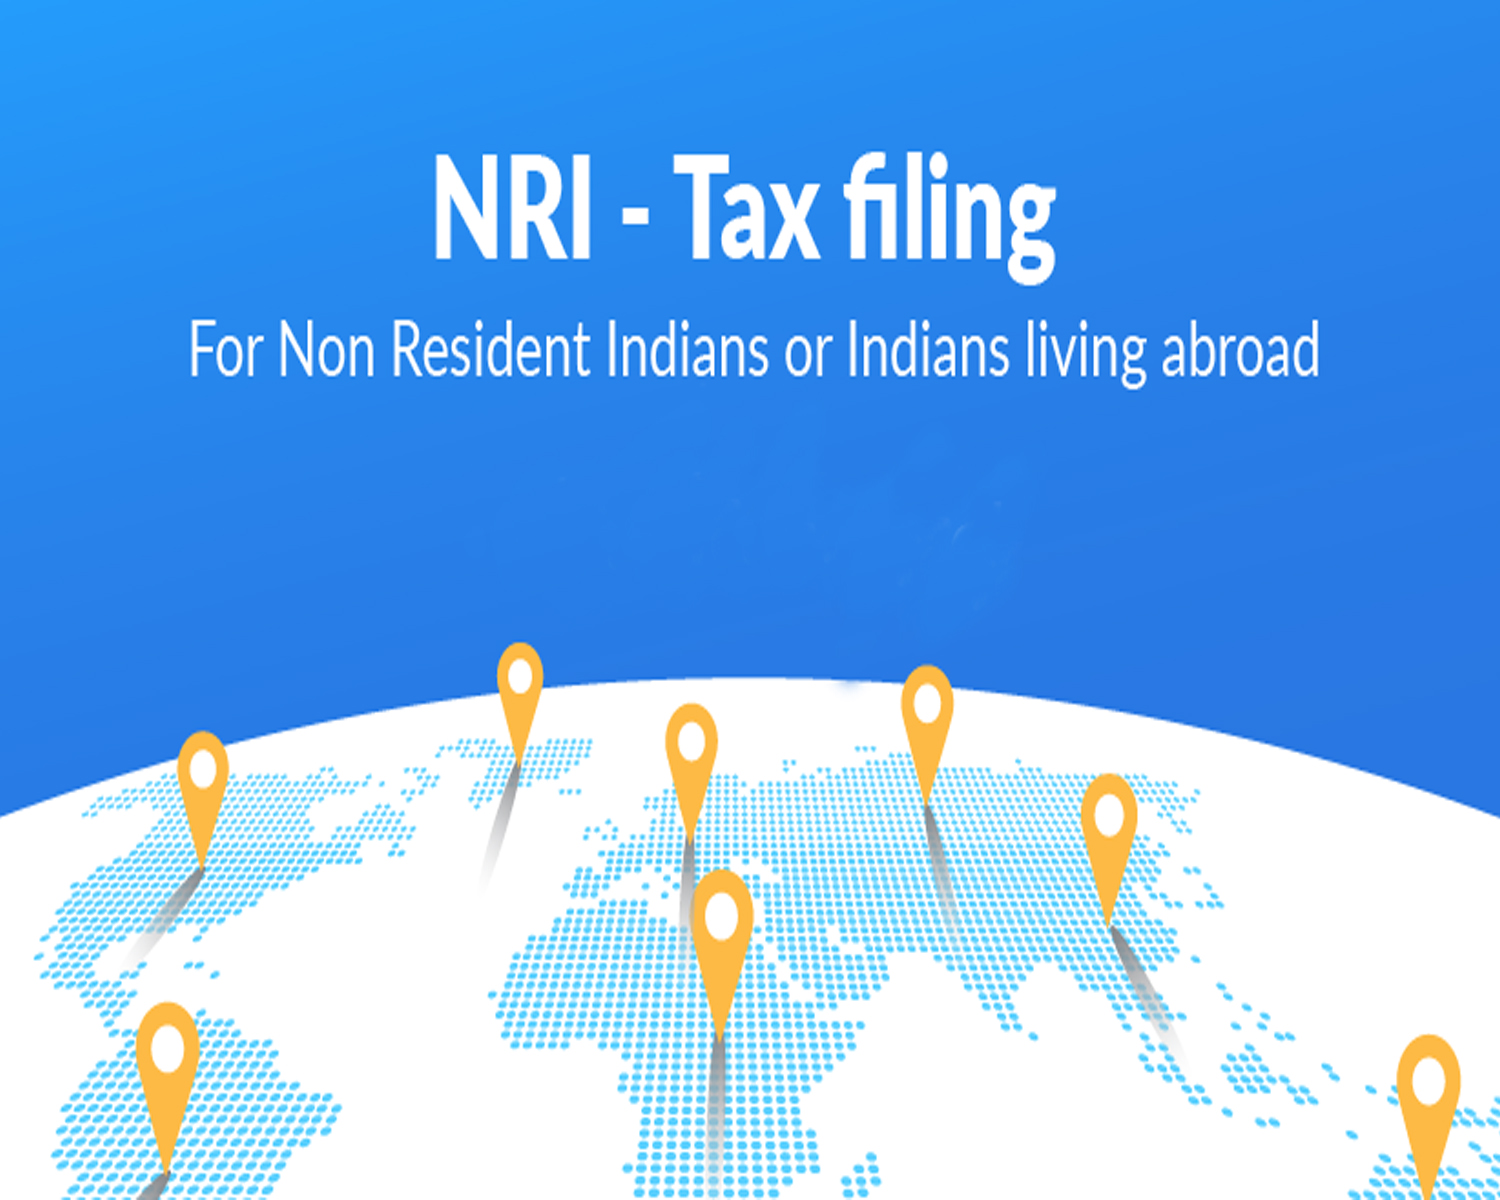 Declaration of Tax Returns by NRI